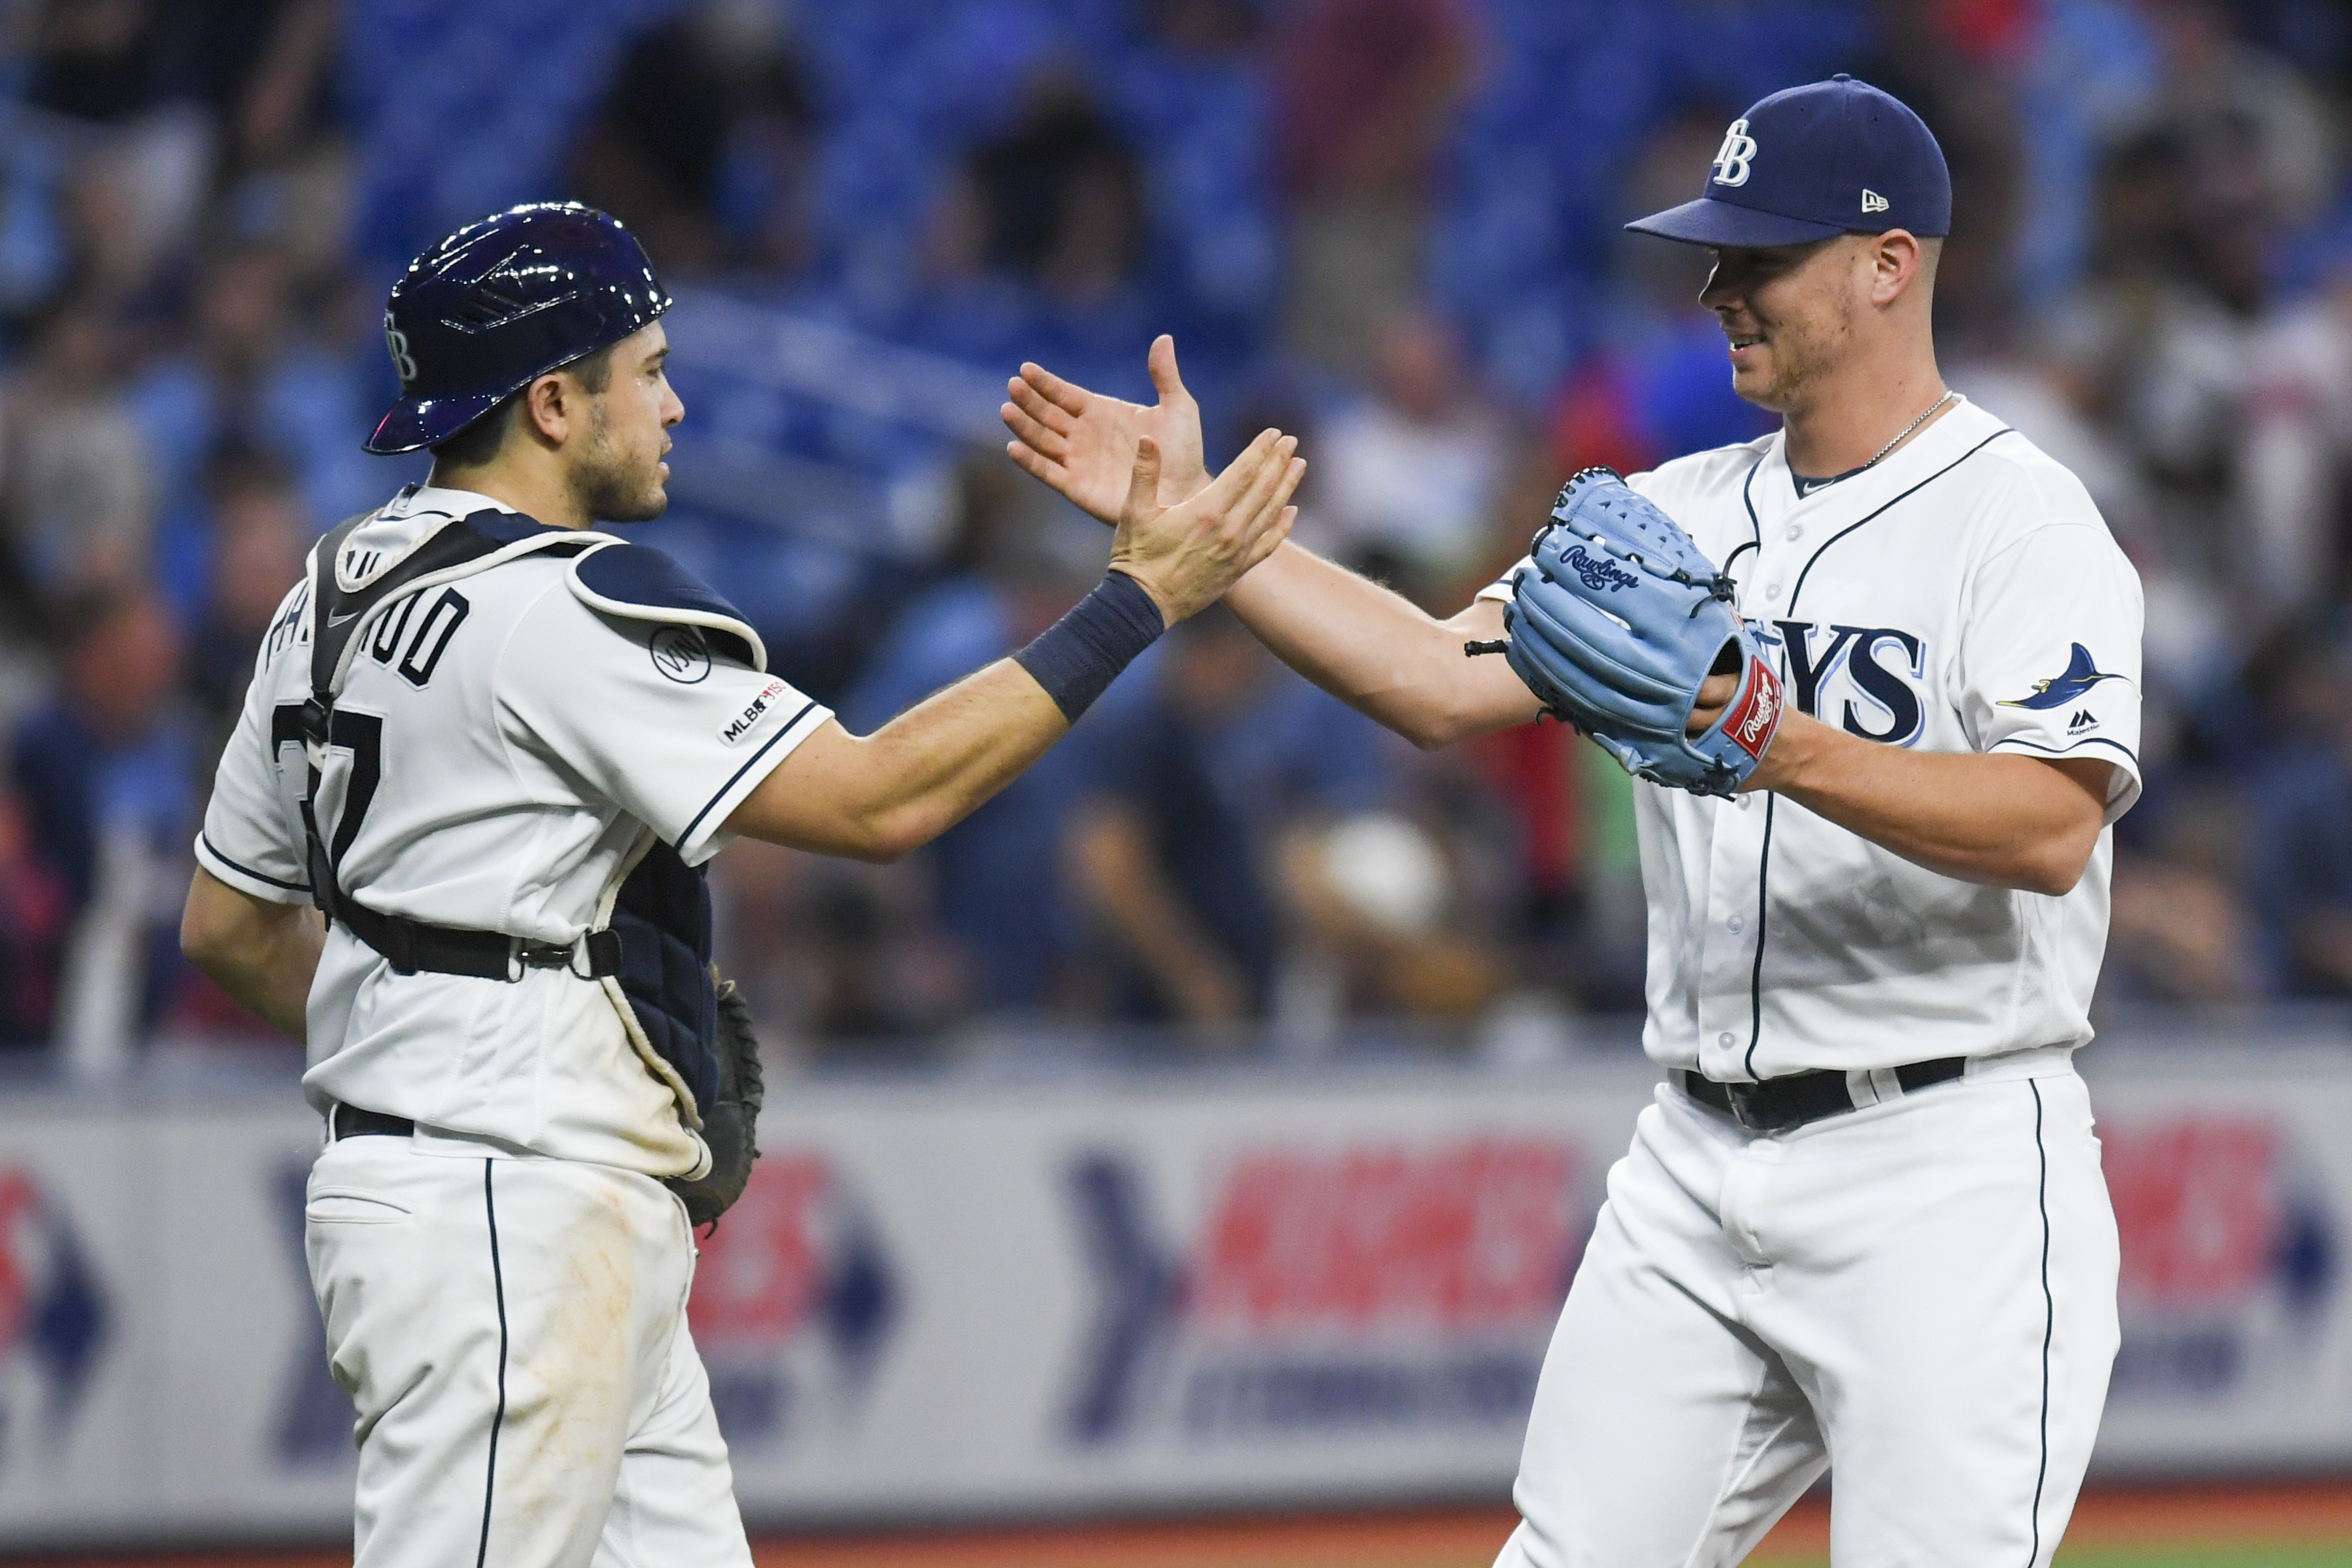 Spectrum dispute with FOX Sports could interrupt Rays TV